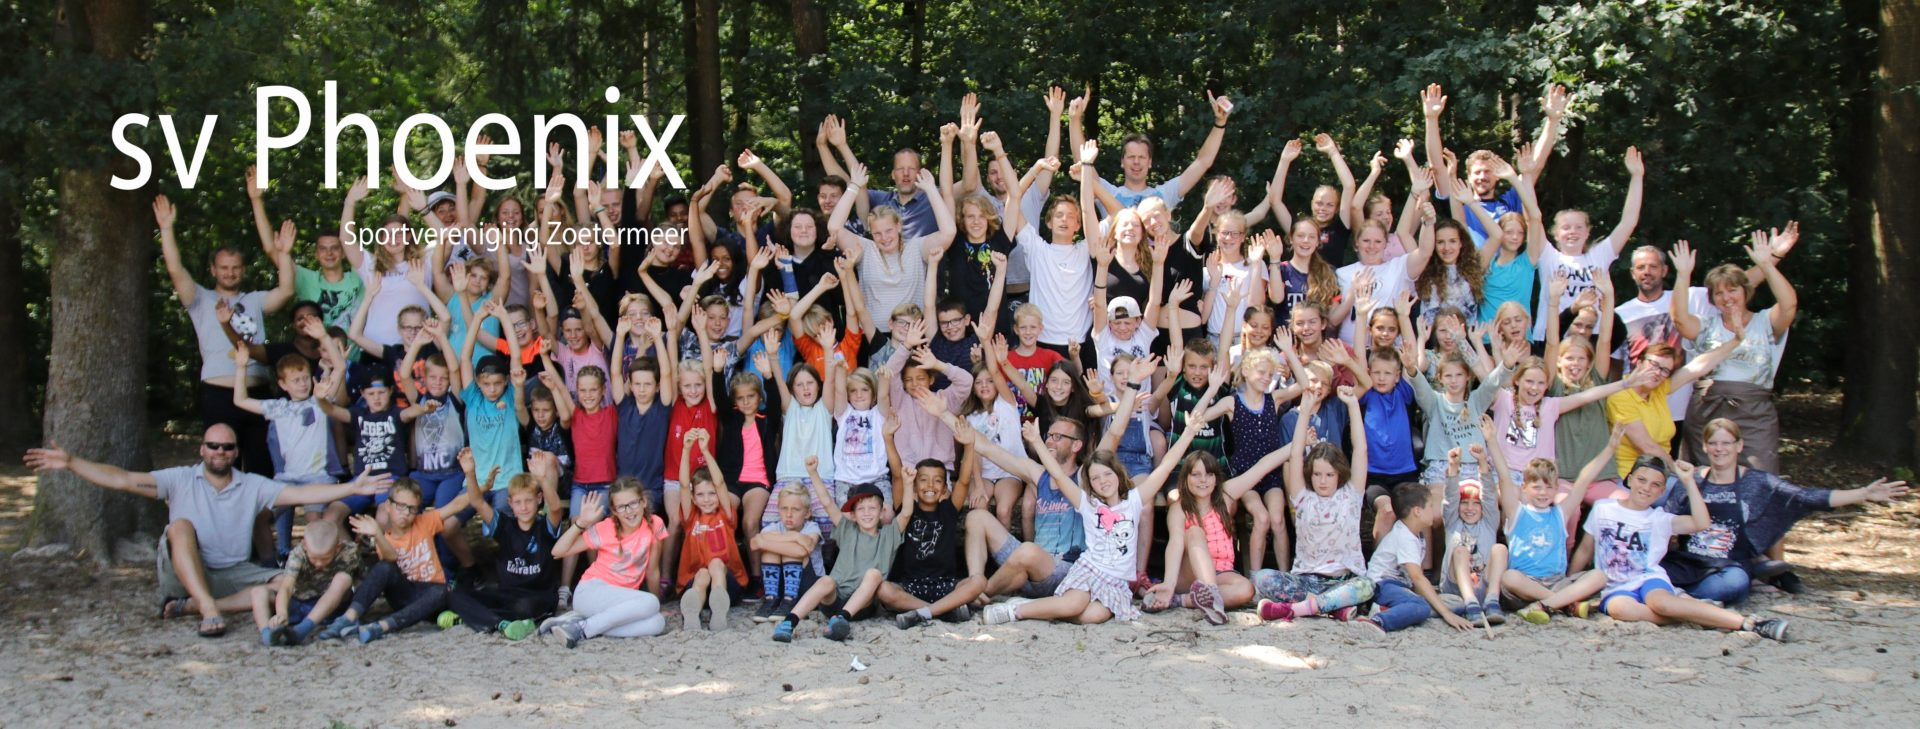 zomerkamp2018 website